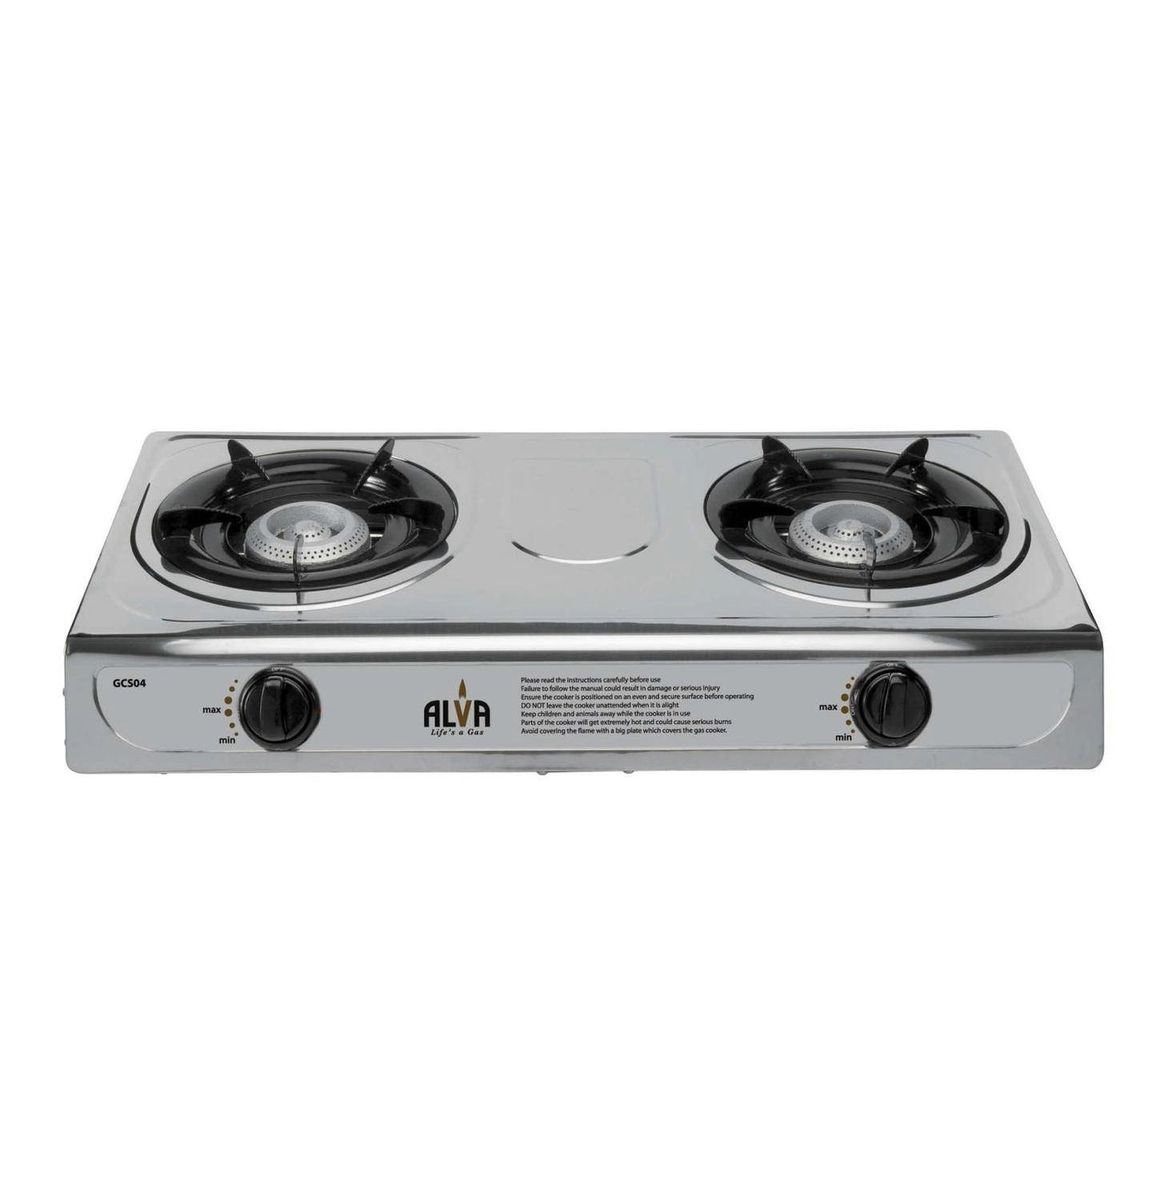 Gas Stainless Steel Cooktop Alva Stainless Steel Gas Stove 2 Burner Buy Online In South